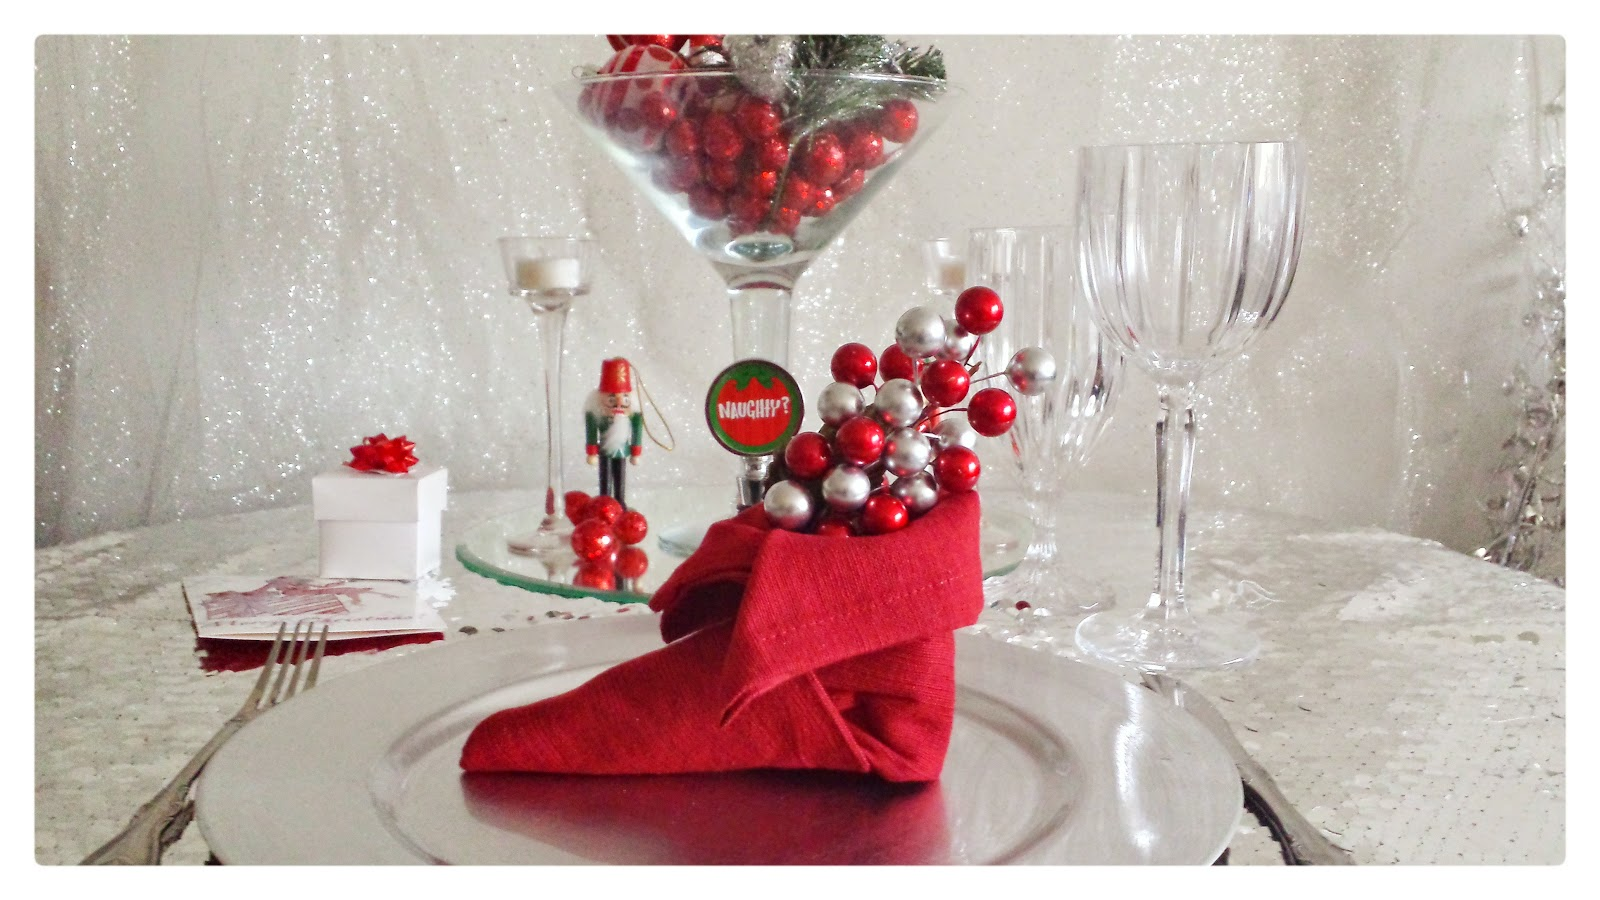 christmas table design for family party with gift box and naughty sign